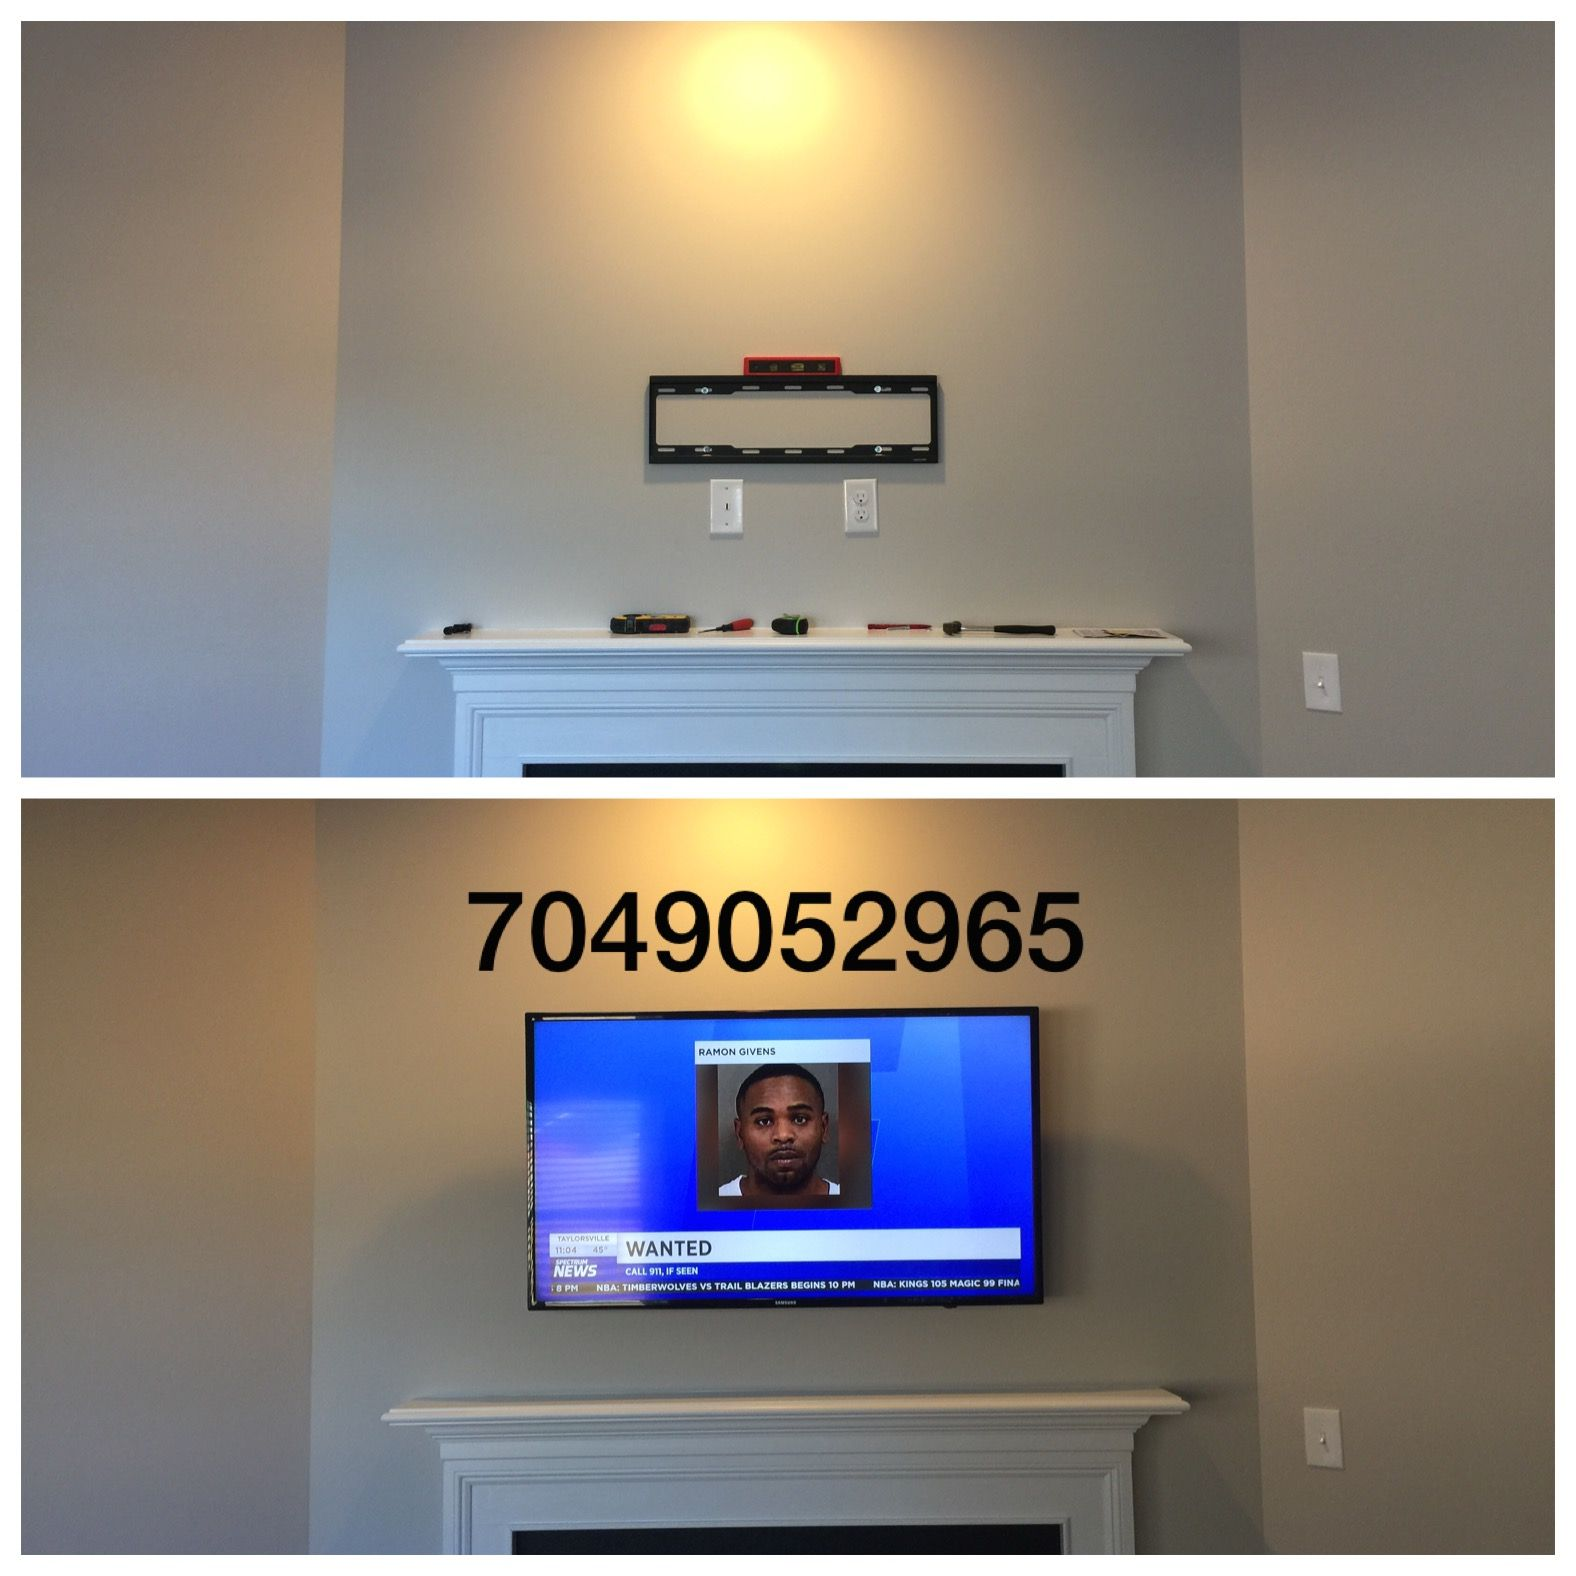 Full Service Home Theater And Wiring Services We Are Expanding Installing Our Residential Commercial To Include Outdoor Security Lighting Cameras Complete Installation